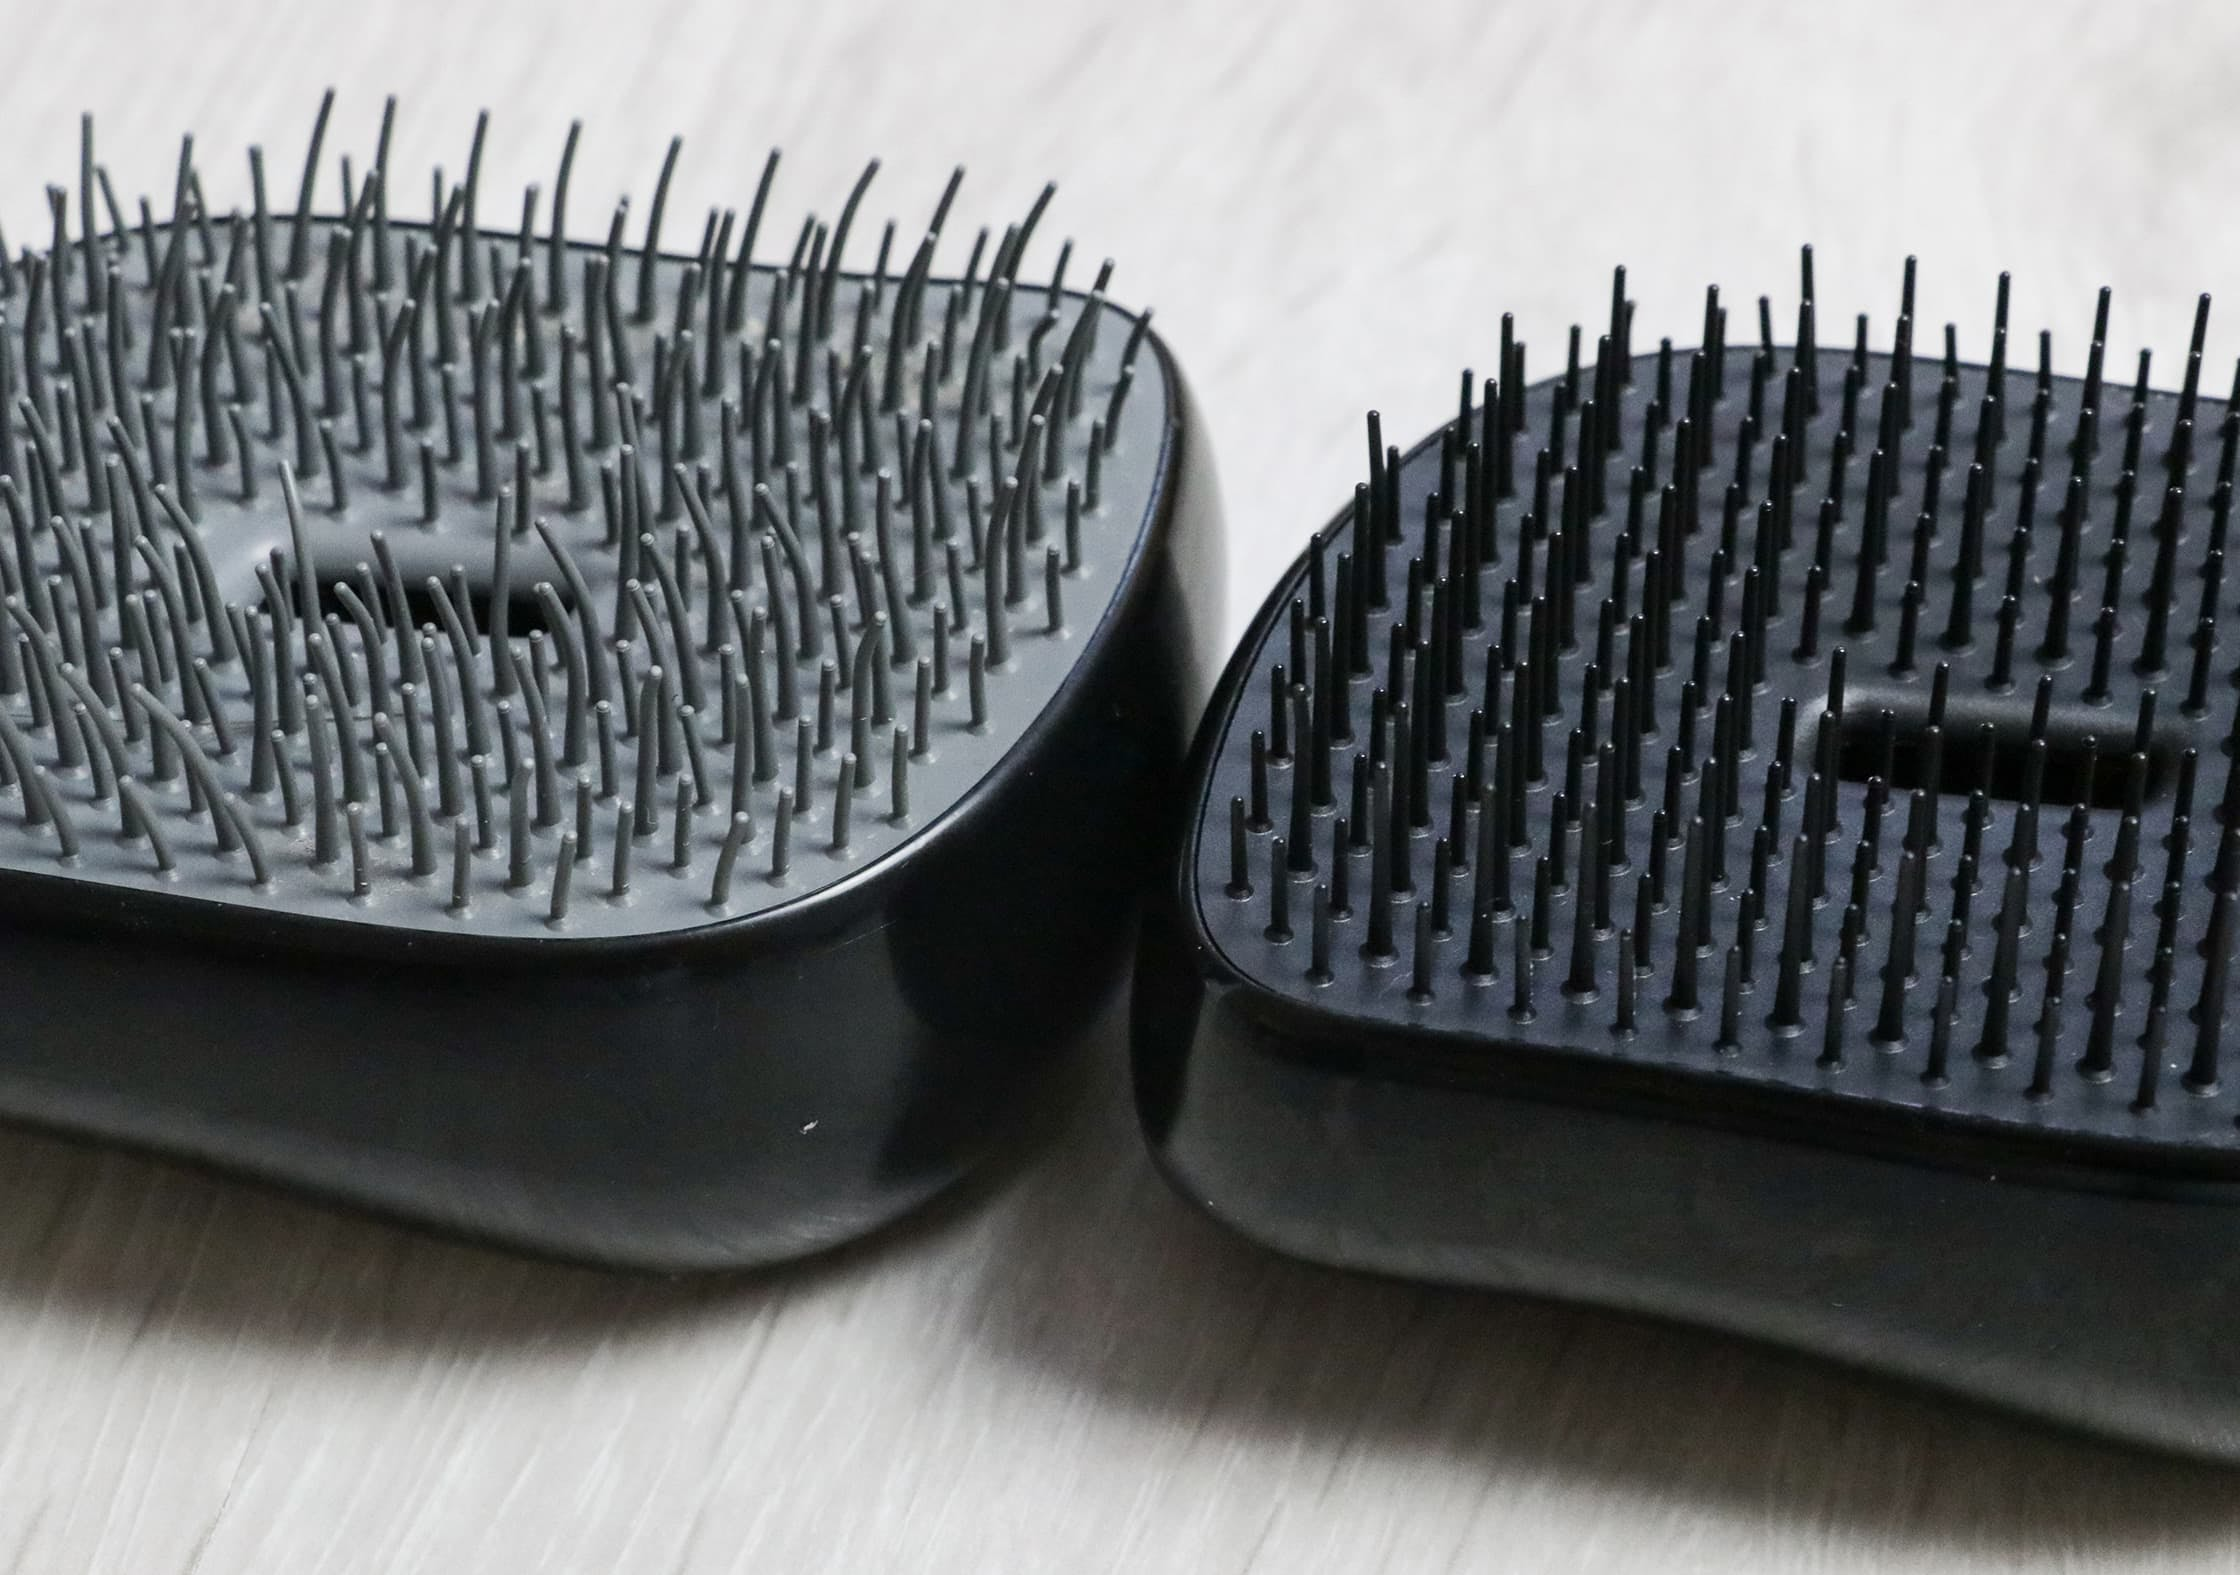 Three Year Old Teeth On The Left And New Tangle Teezer Compact Styler On The Right